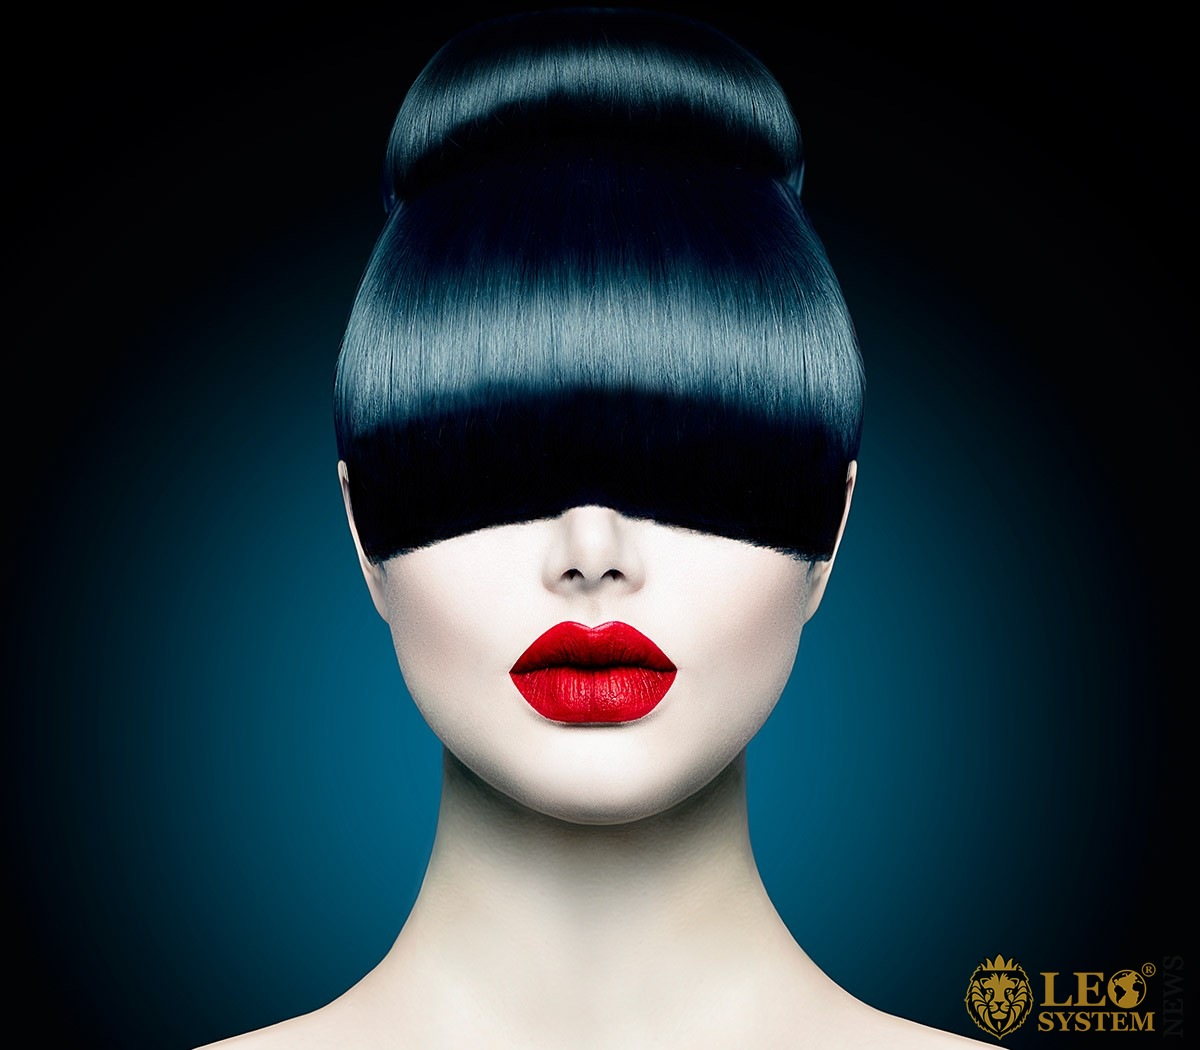 Image of a woman with red lips and hair covering her eyes